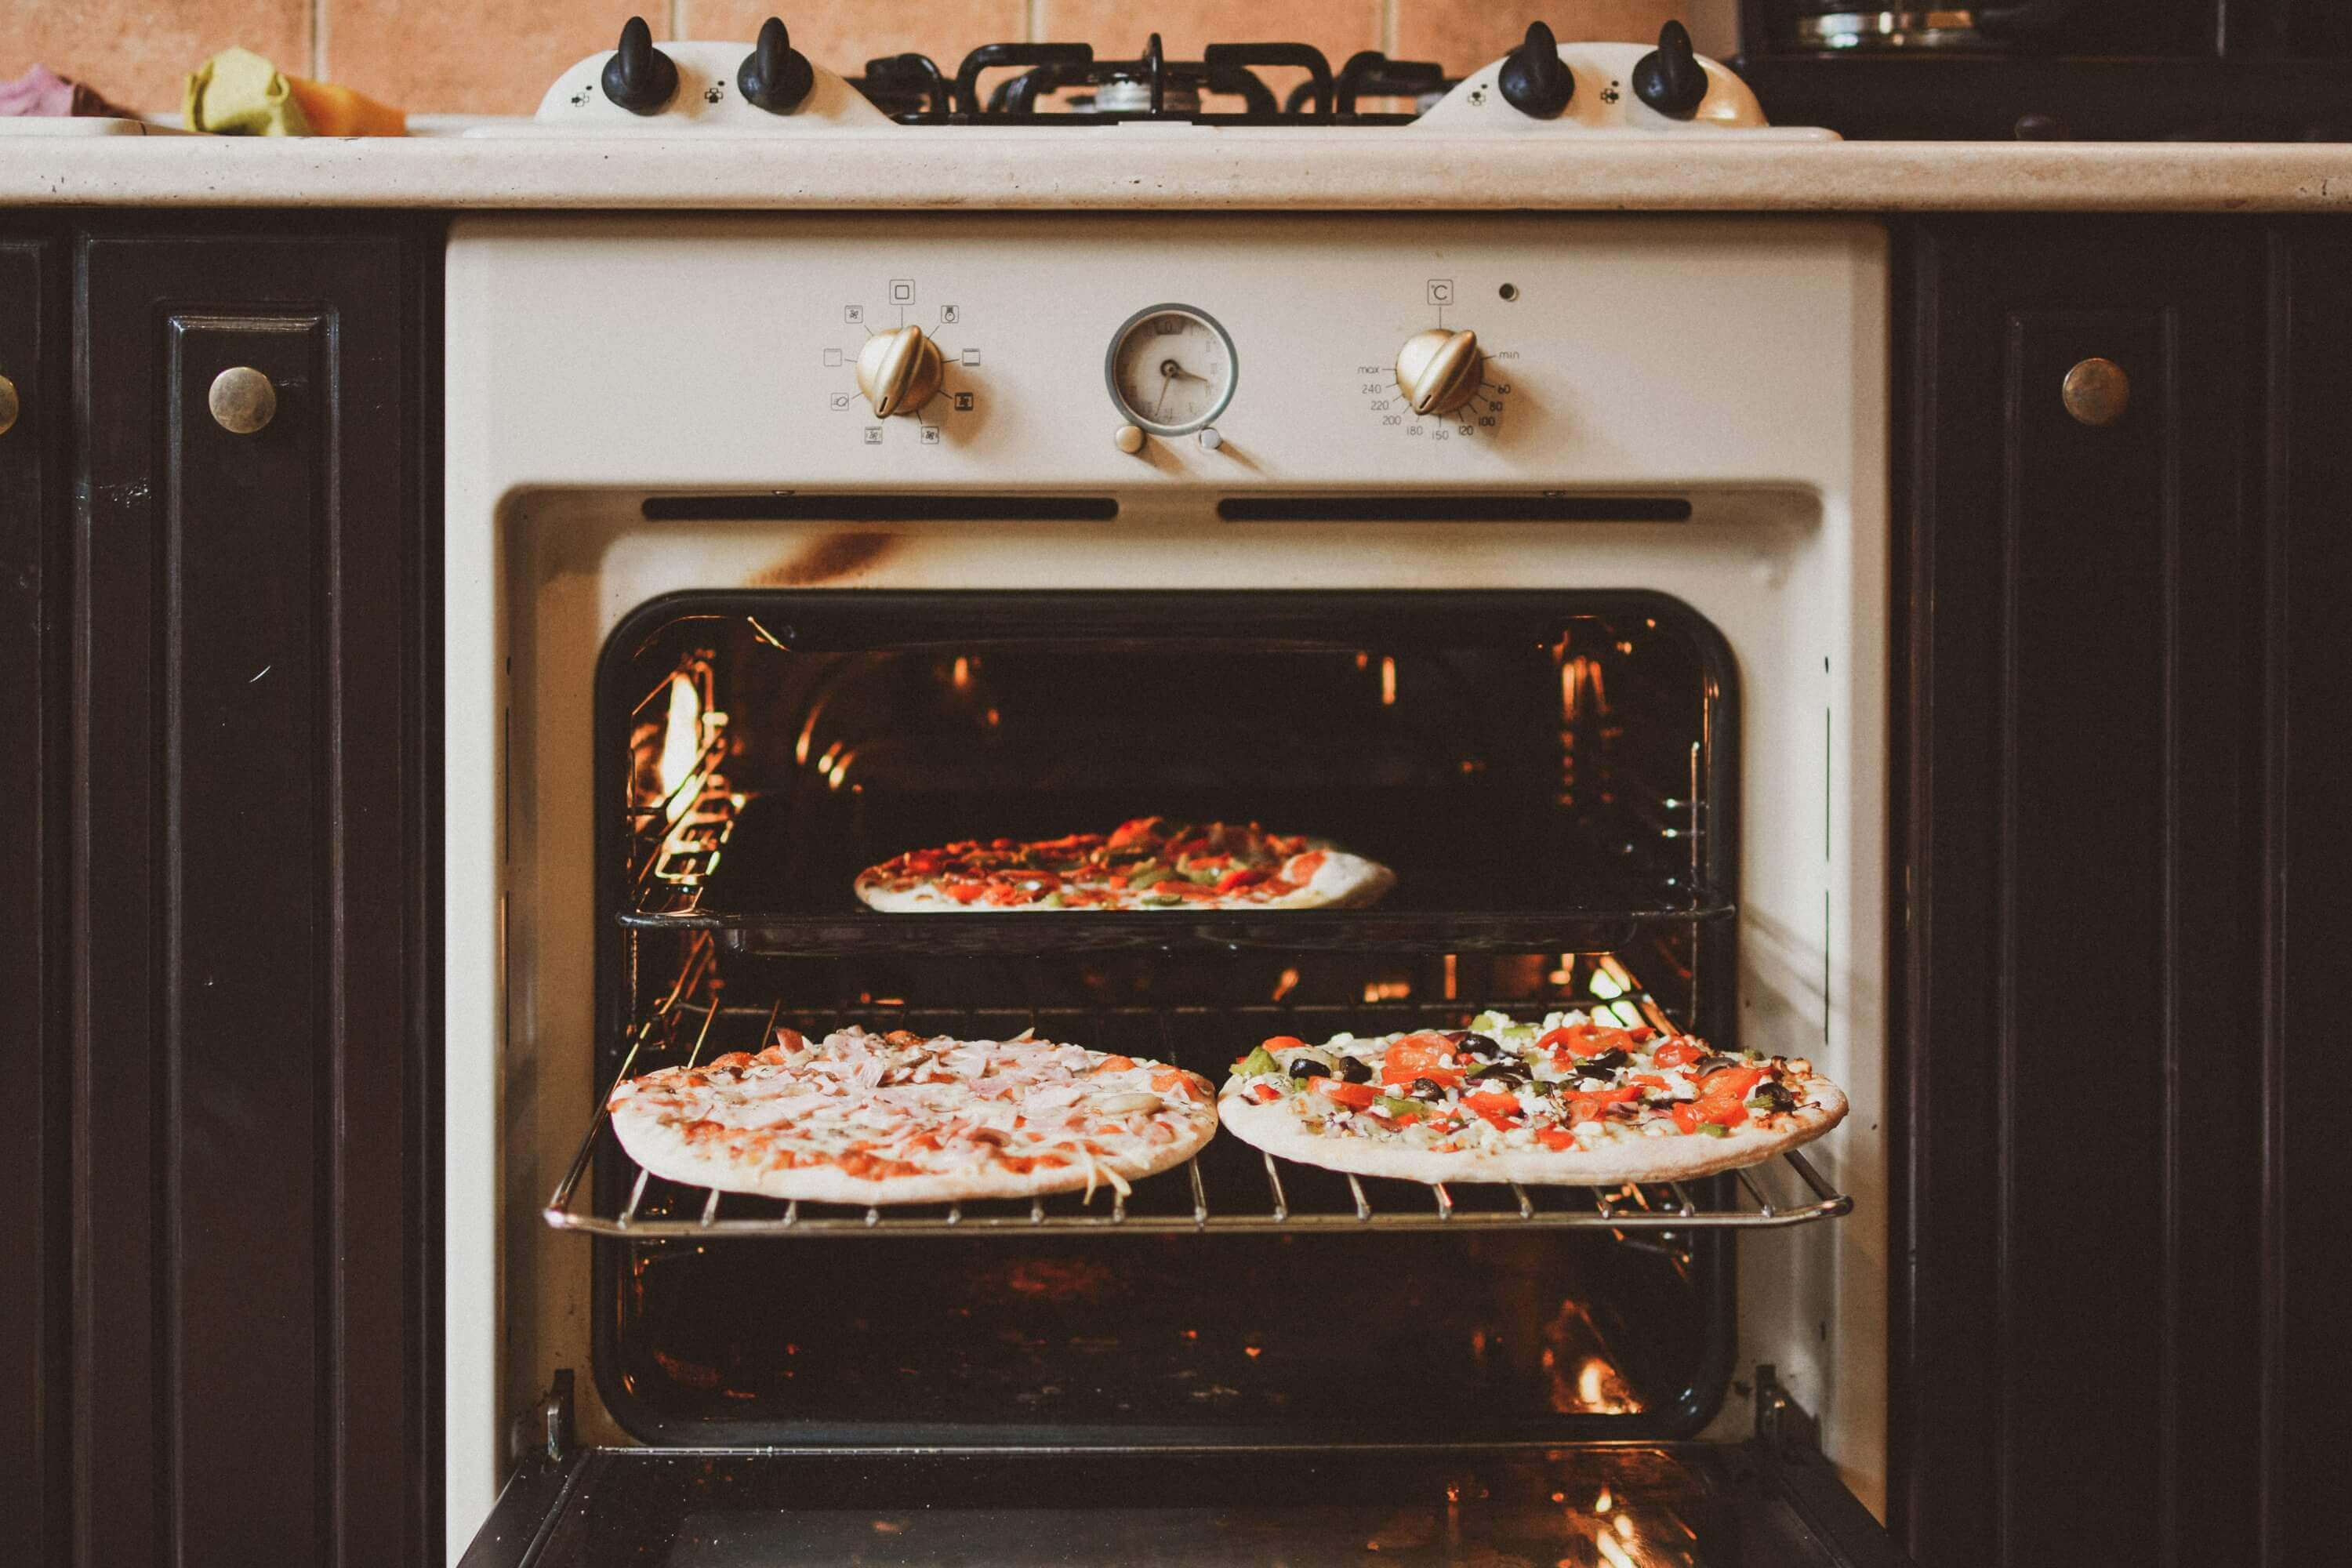 Open oven with pizzas.